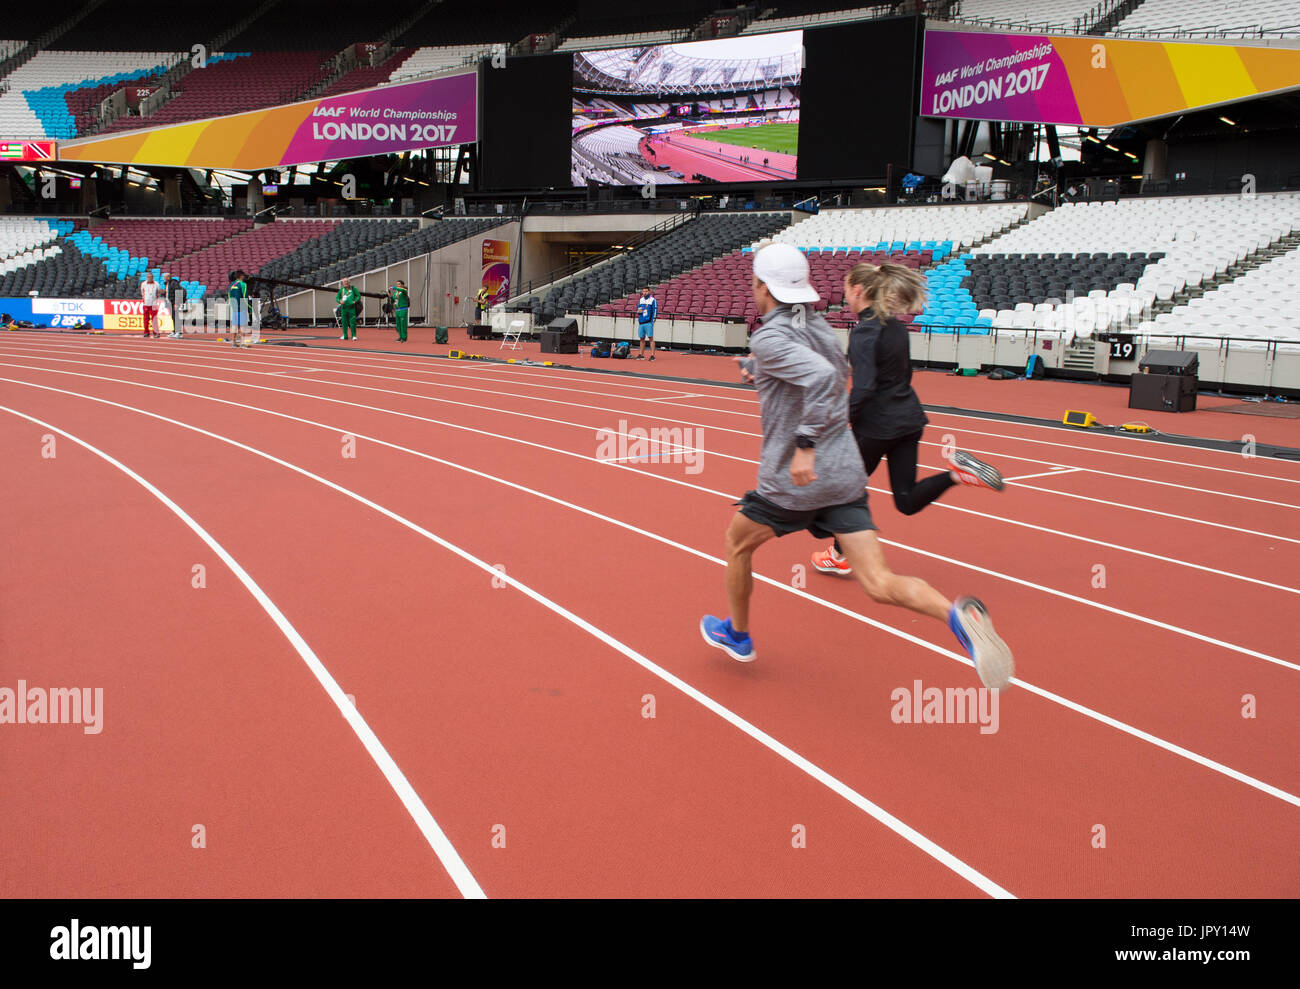 London, UK. 2nd Aug, 2017. Athletes run in the interior space of the Olympic Stadium in London, Britain, on 2 August, Stock Photo